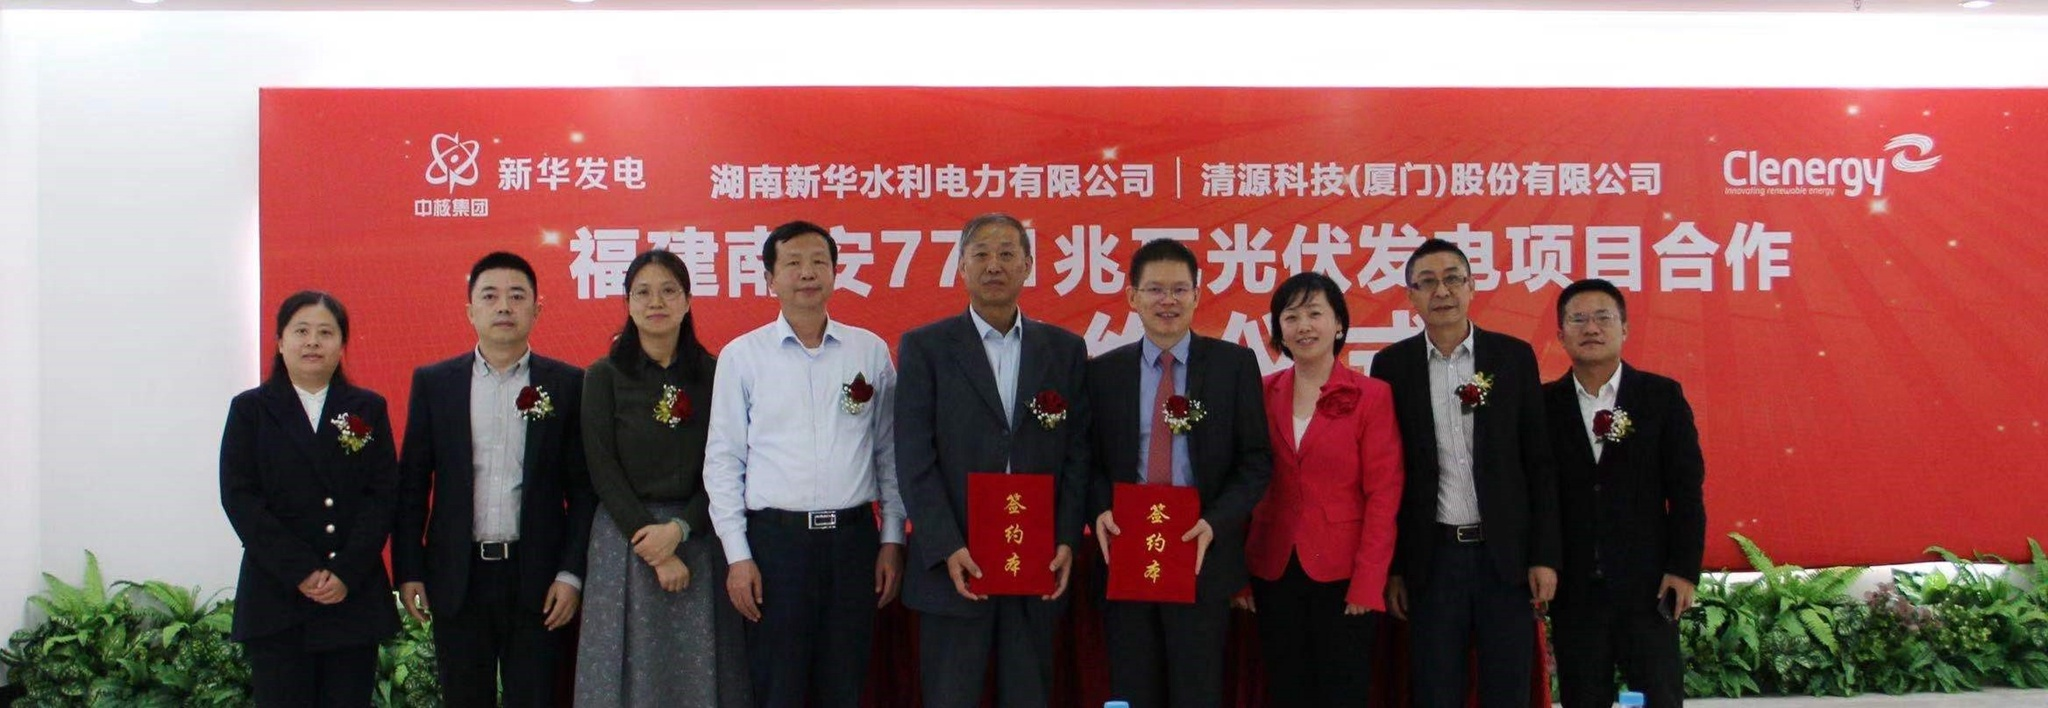 Clenergy and Hunan Xinhua at the Signing Ceremony for Cooperation Agreement for 77.1MW Solar Power Plant